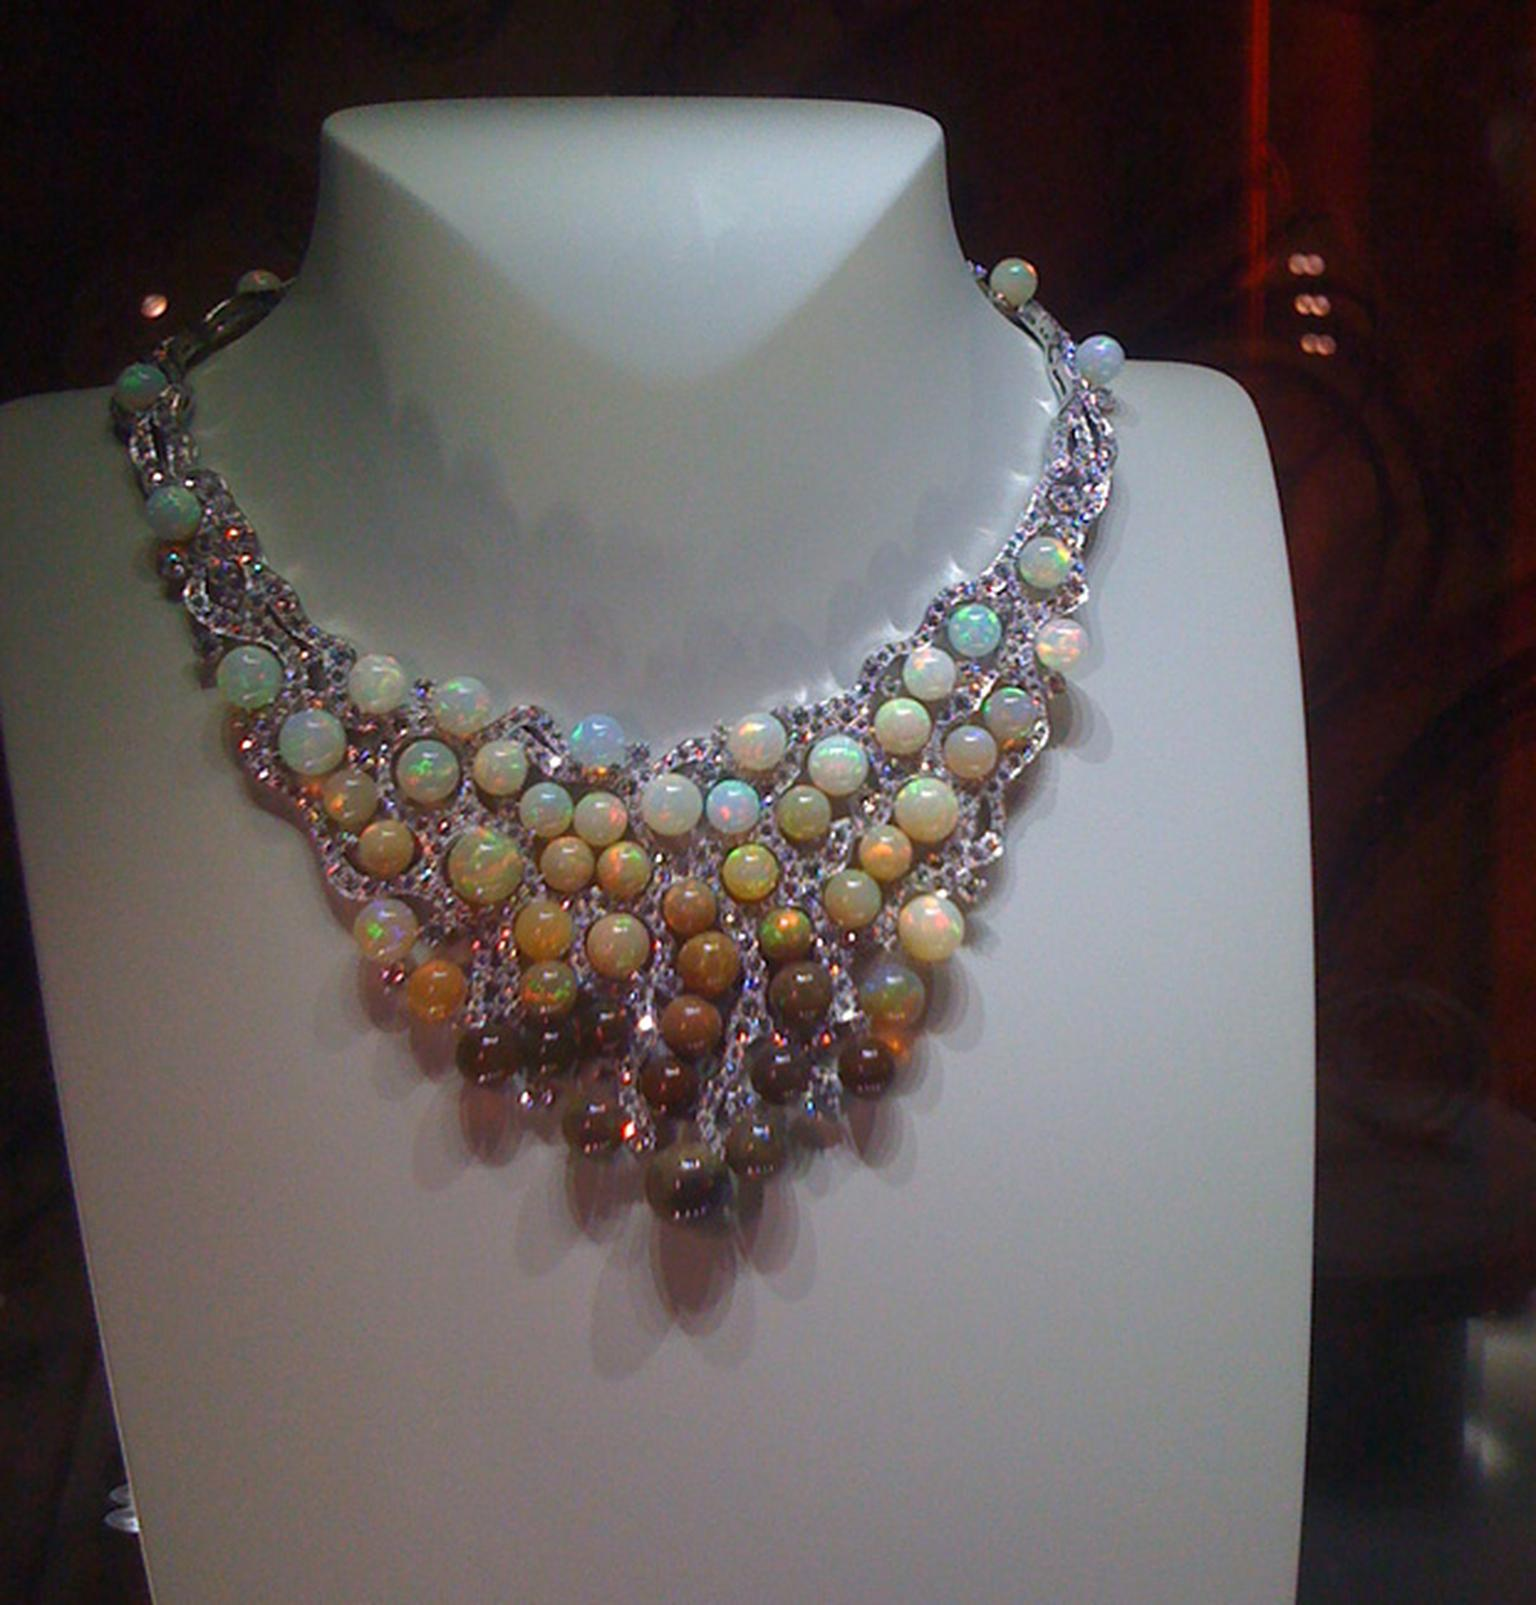 Van Cleef & Arpel's opal bead necklace - perhaps the most memorable piece of the Biennale